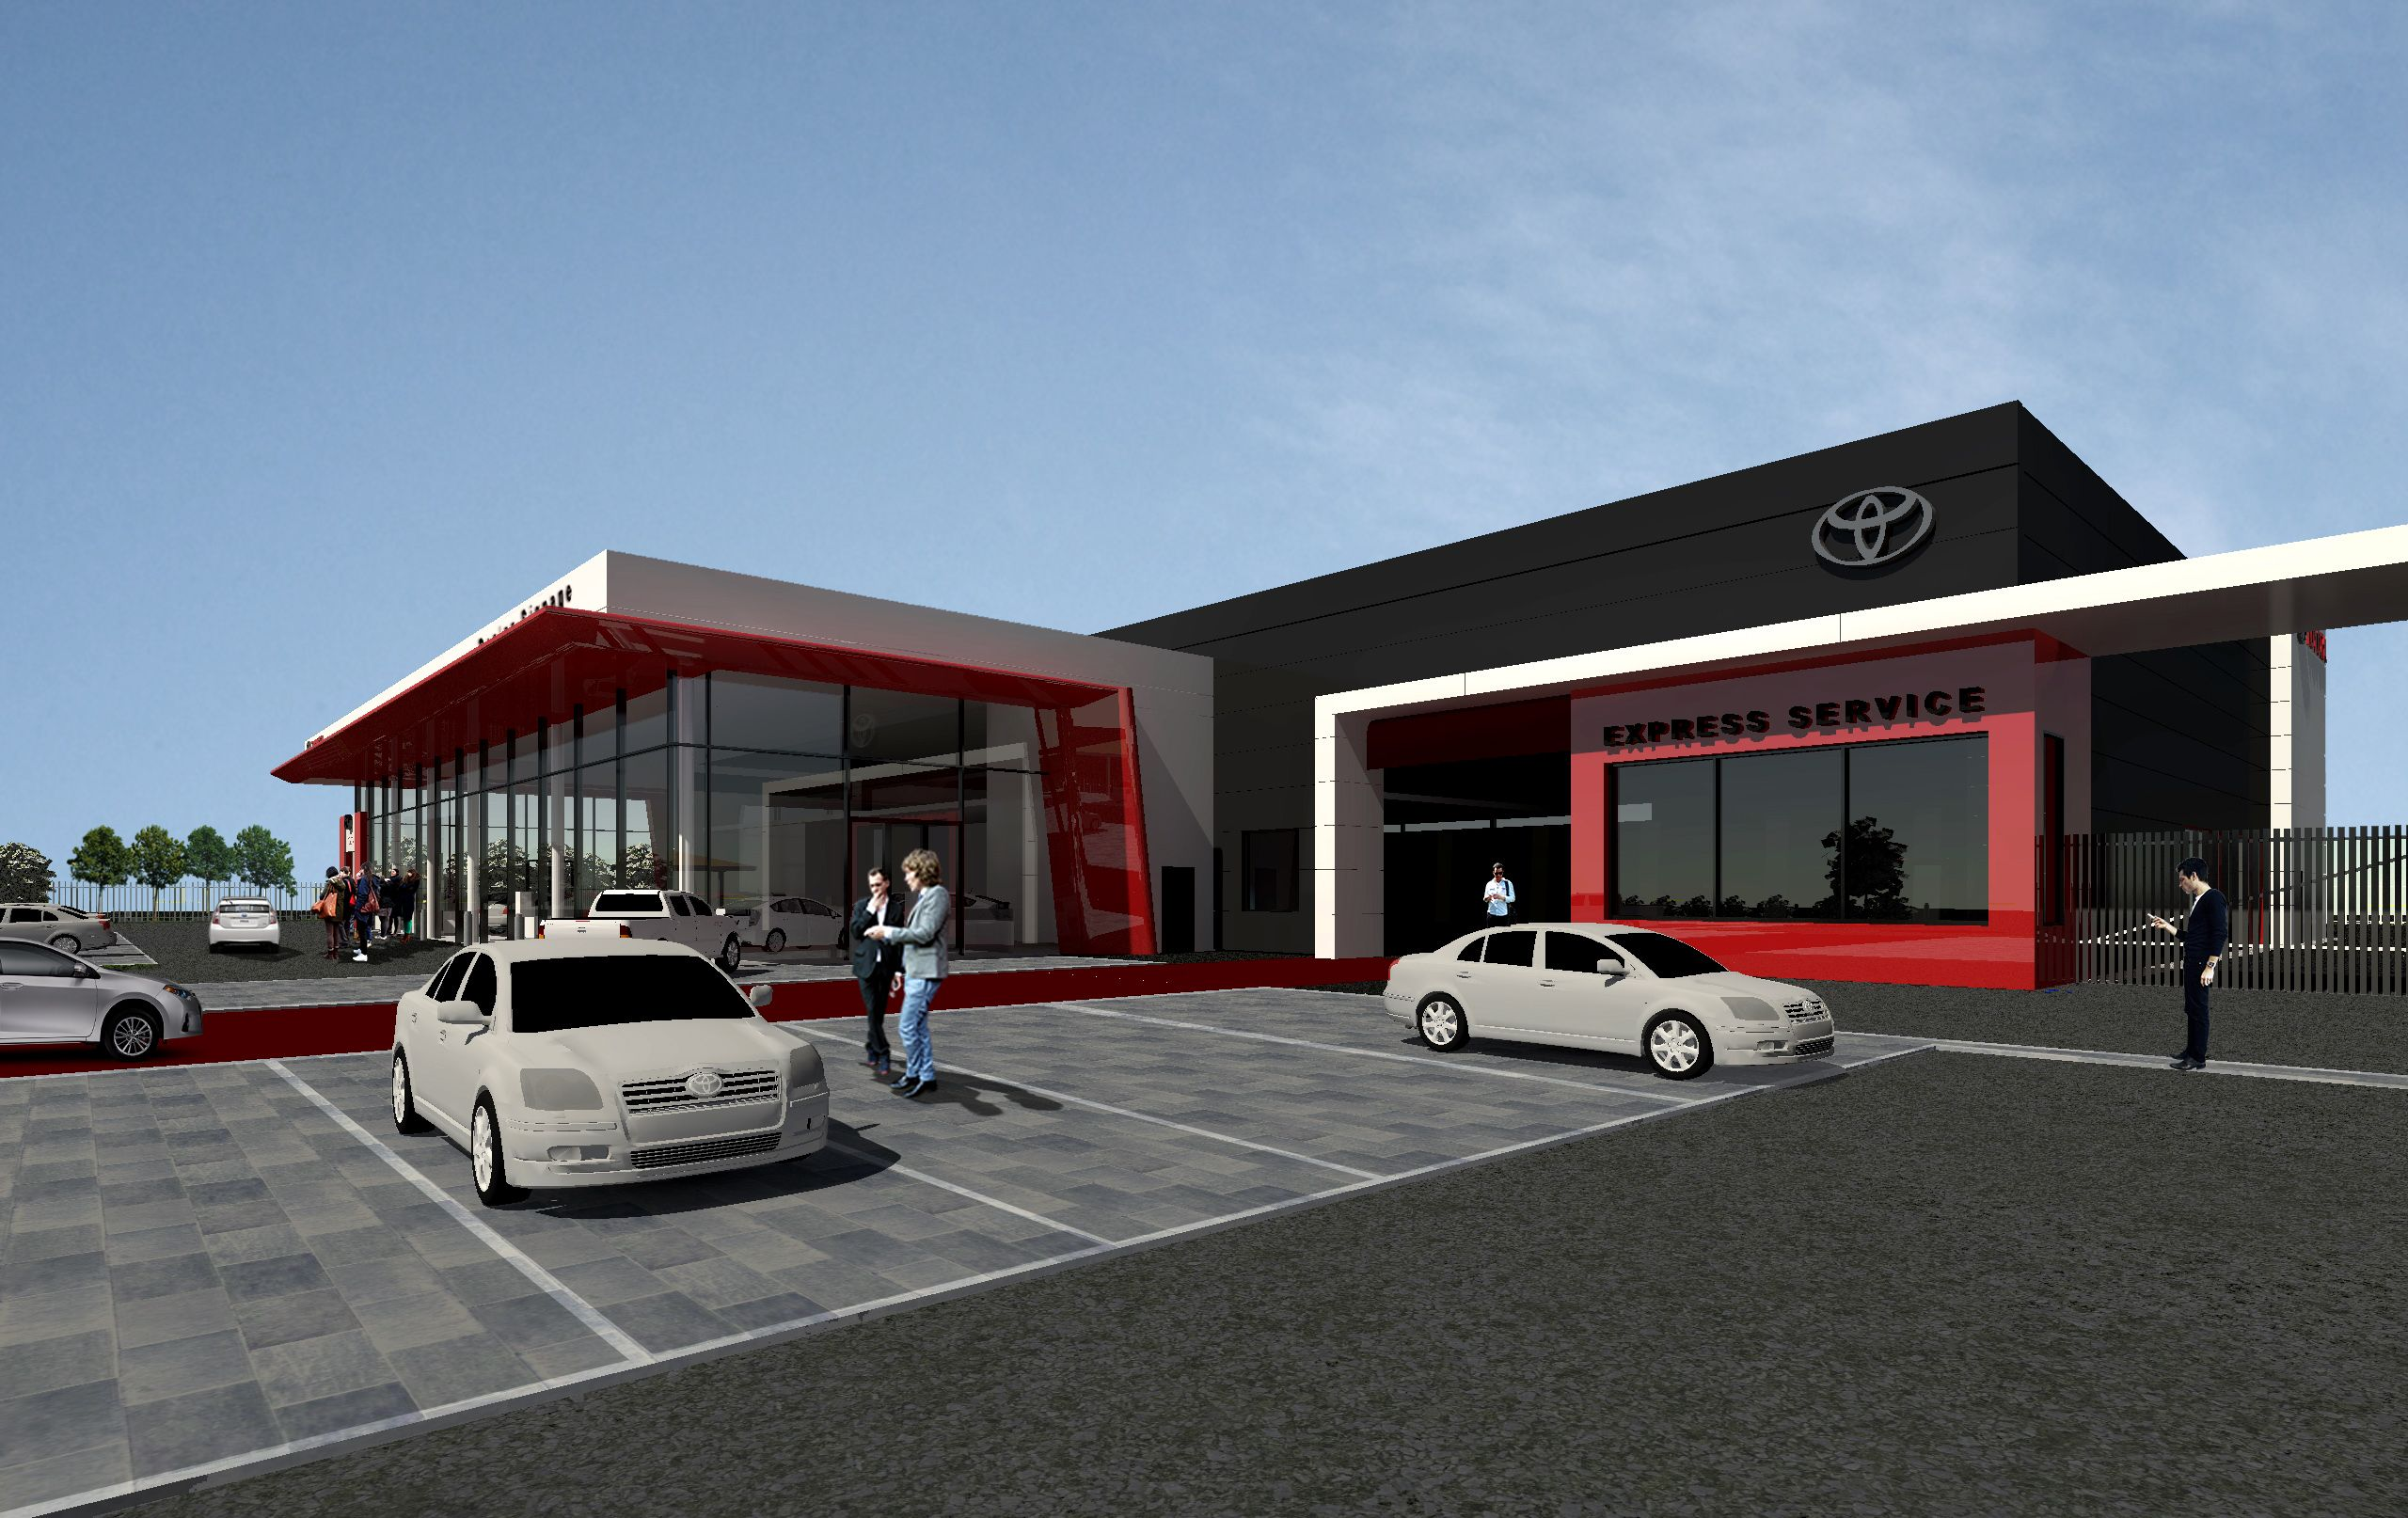 As a proposal for the latest addition to the Liffey Valley Motor Mall at Liffey Valley Shopping centre NODE have dsigned a flagship car showroom and service centre for Toyota Ireland and Kileen Motor Group. The 30000 sq.ft. facility will offer new and used car sales and a comprehensive service offer to Toyota customers.  Architecturally the sales and service volumes are expressed in contrasting colours white and dark grey respectively with key features including a canopy that cantilevers…